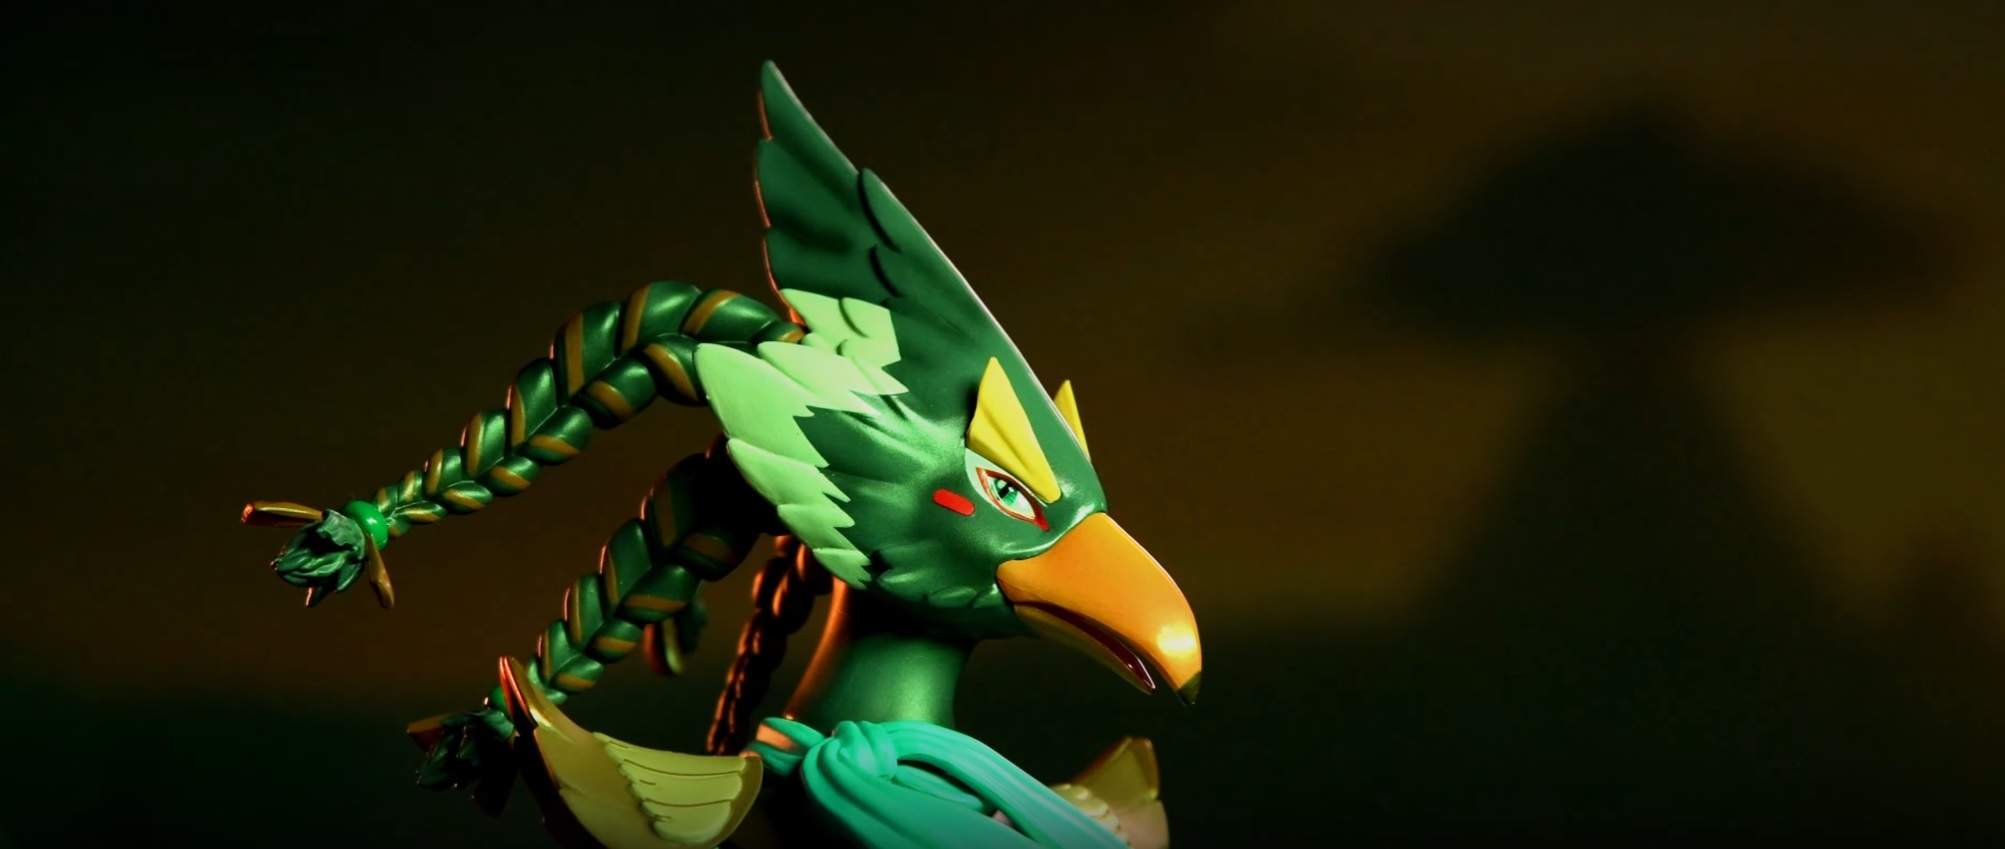 First 4 Figures is doing a Zelda: Breath of the Wild line, and it starts with the best Champion of them all screenshot